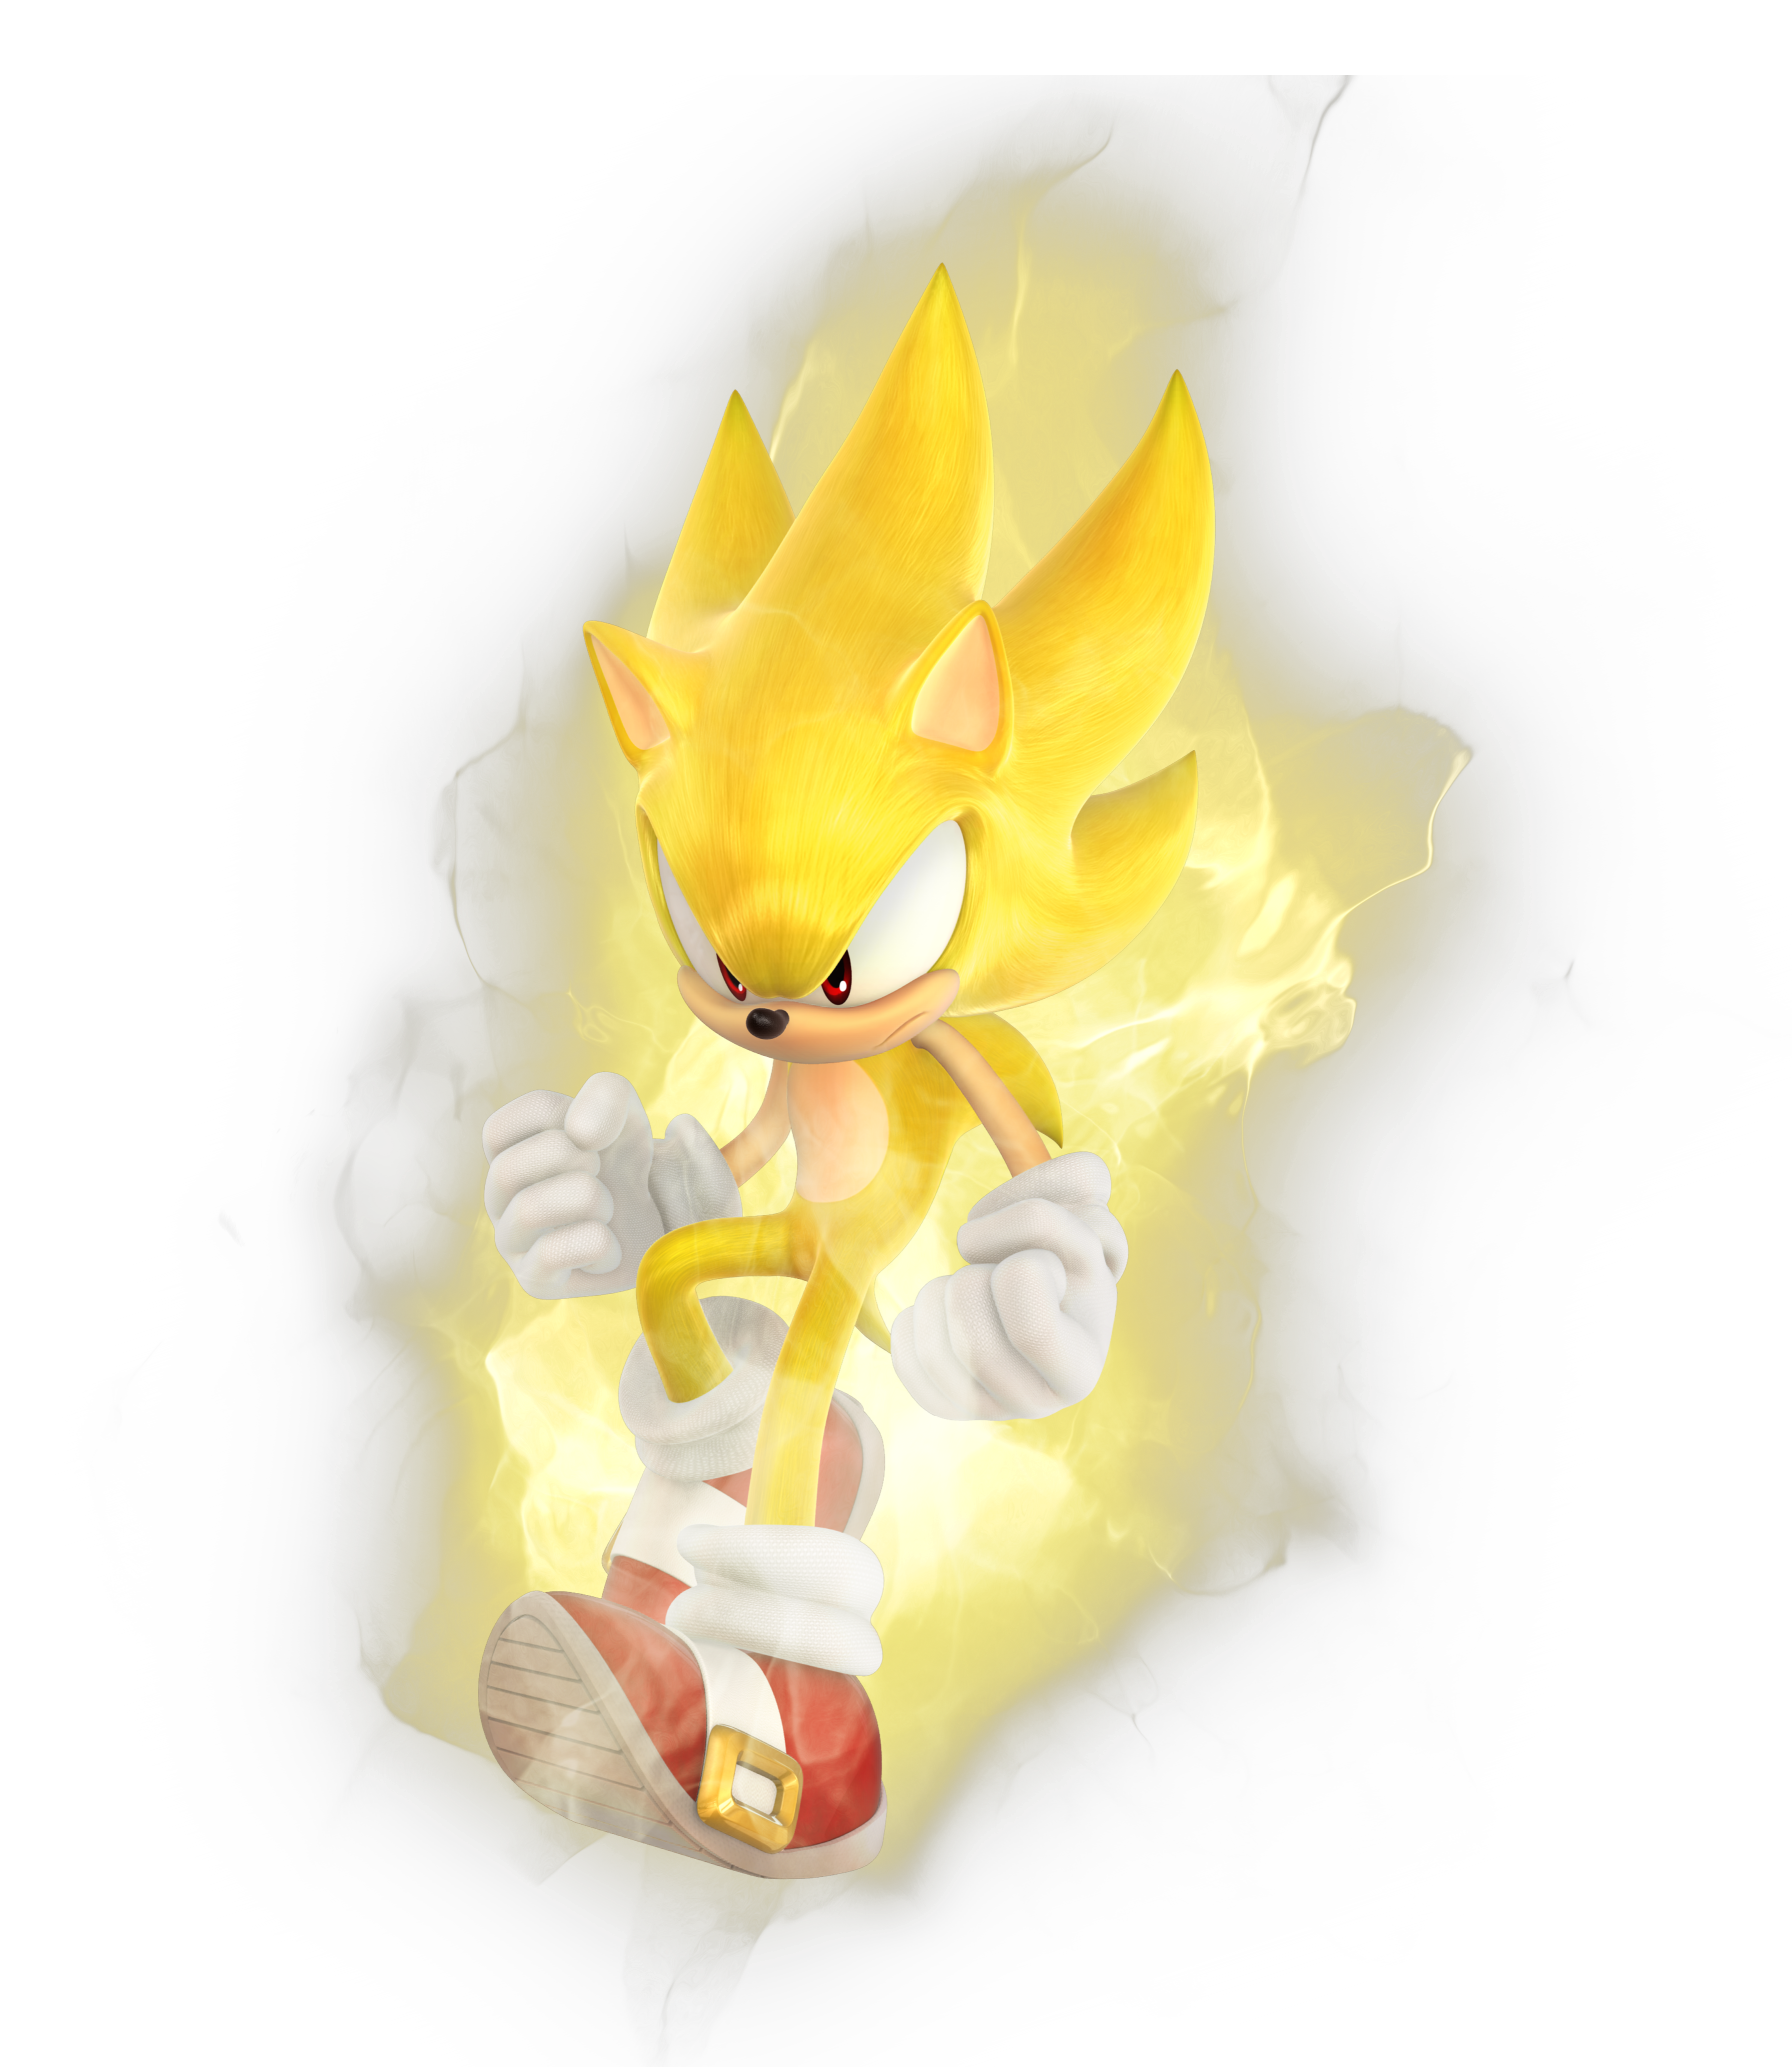 super-sonic-sonic-the-hedgehog-29904932-1792-2067.png